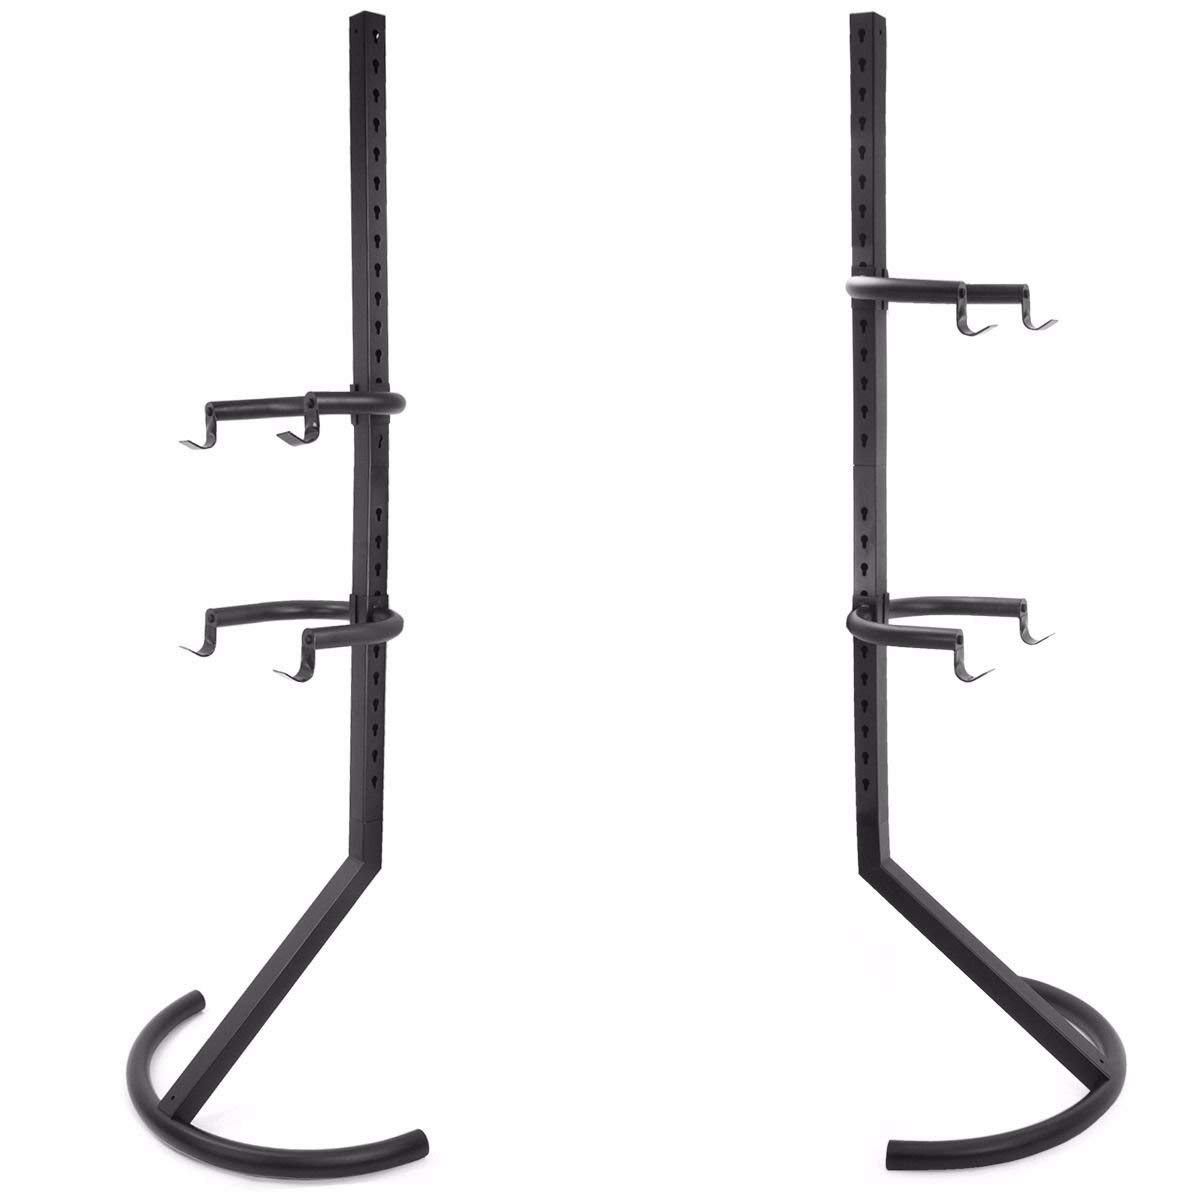 TimmyHouse Bike Rack Stand Gravity 2 Bicycle Rack Storage Or Display Holds Two Bicycles